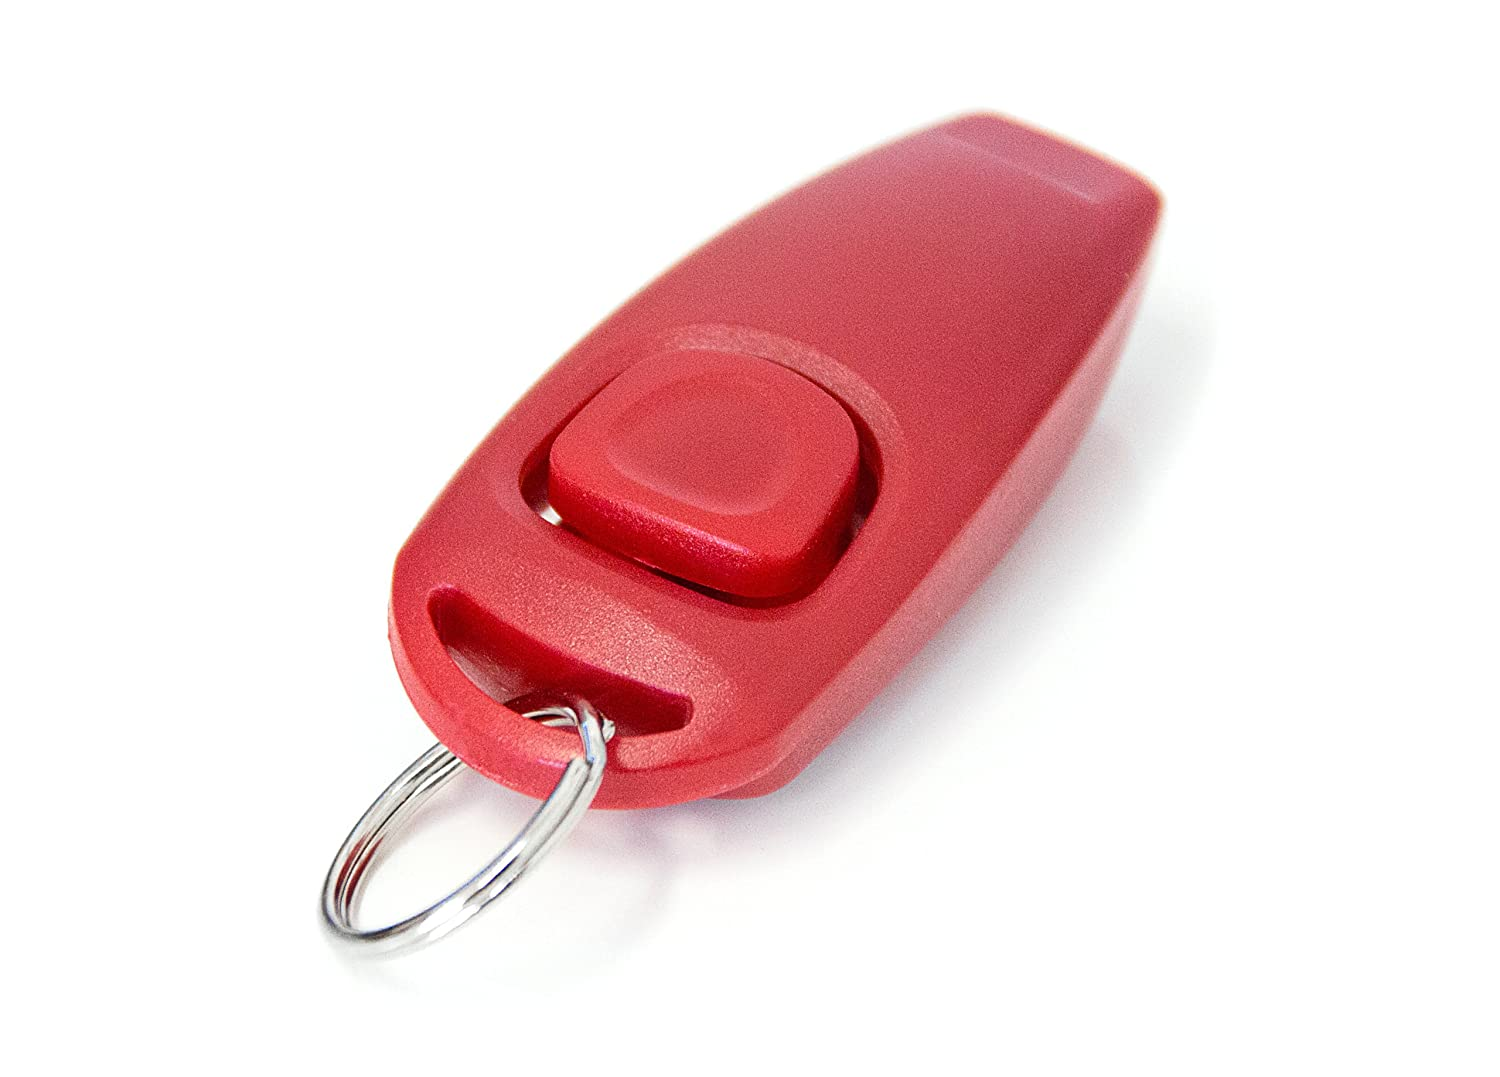 """2in1 clicker and dog whistle"" Dog clicker dog whistle dogclicker clicker dog training dogtraining in red NEW / brand PRECORN"